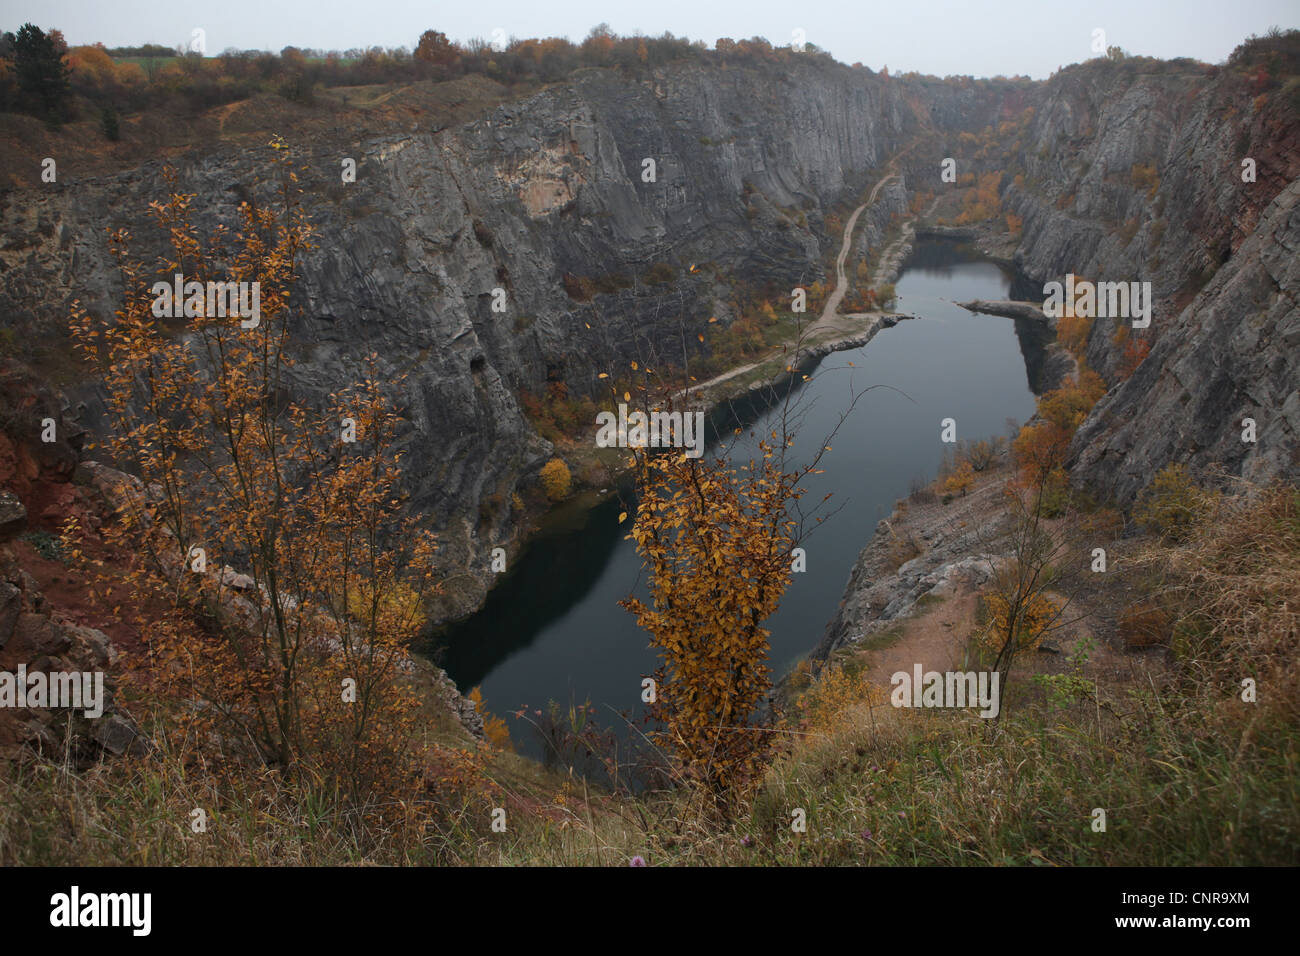 Velka Amerika or Big America. Abandoned limestone quarry near Morina village in Central Bohemia, Czech Republic. - Stock Image